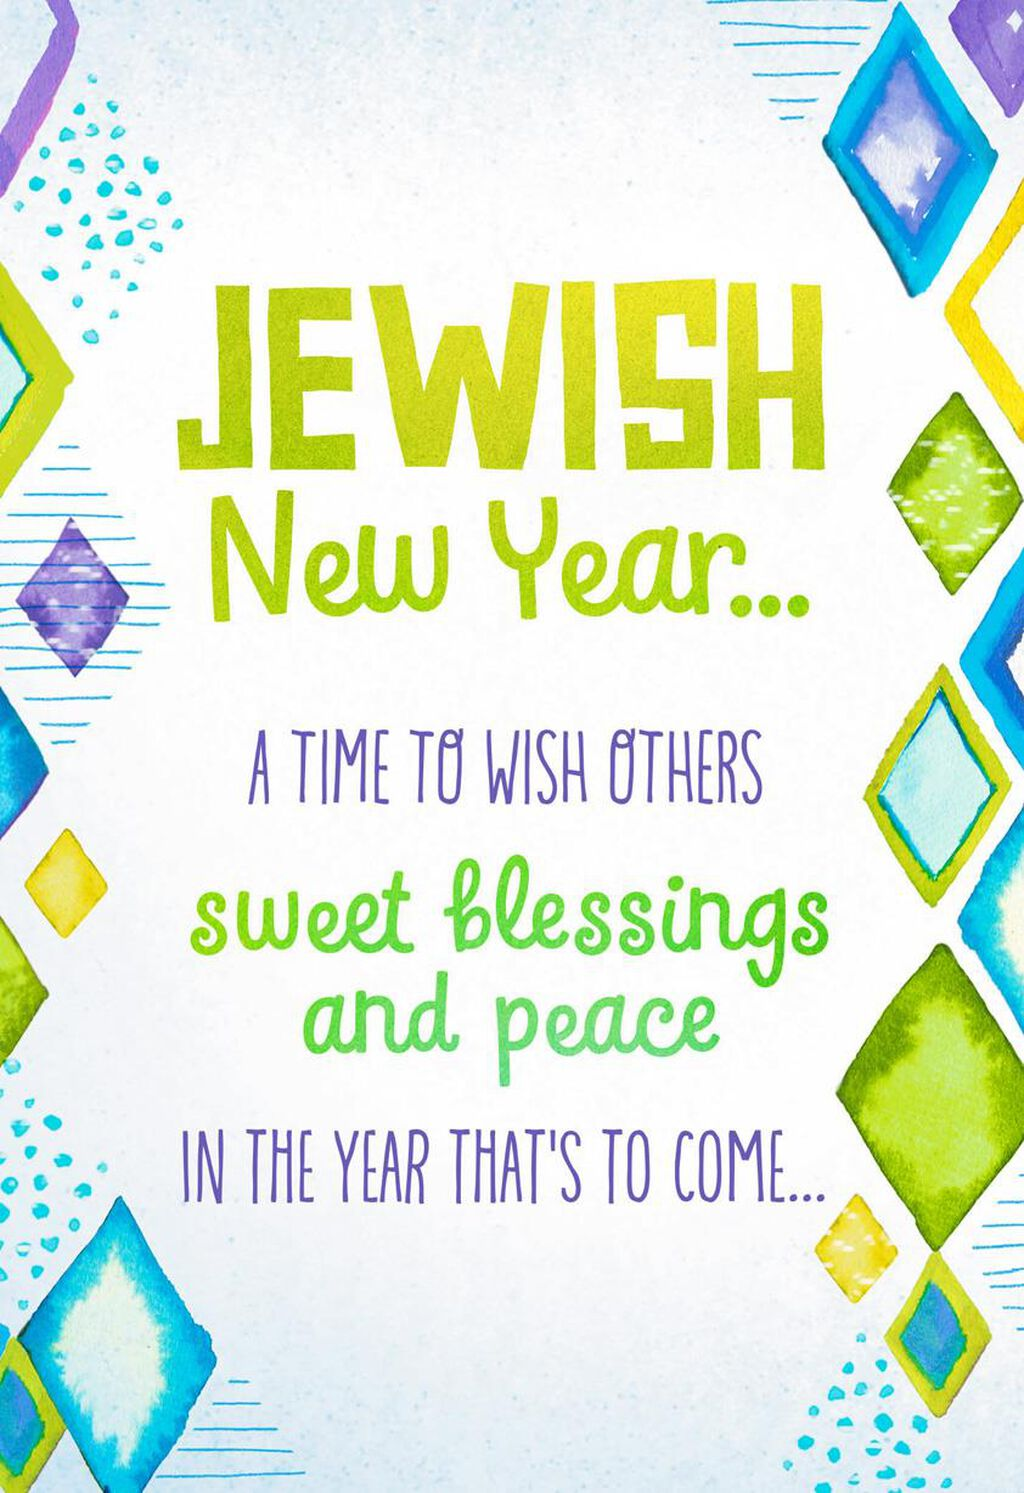 Sweet Blessings and Peace Rosh Hashanah Card - Greeting Cards - Hallmark